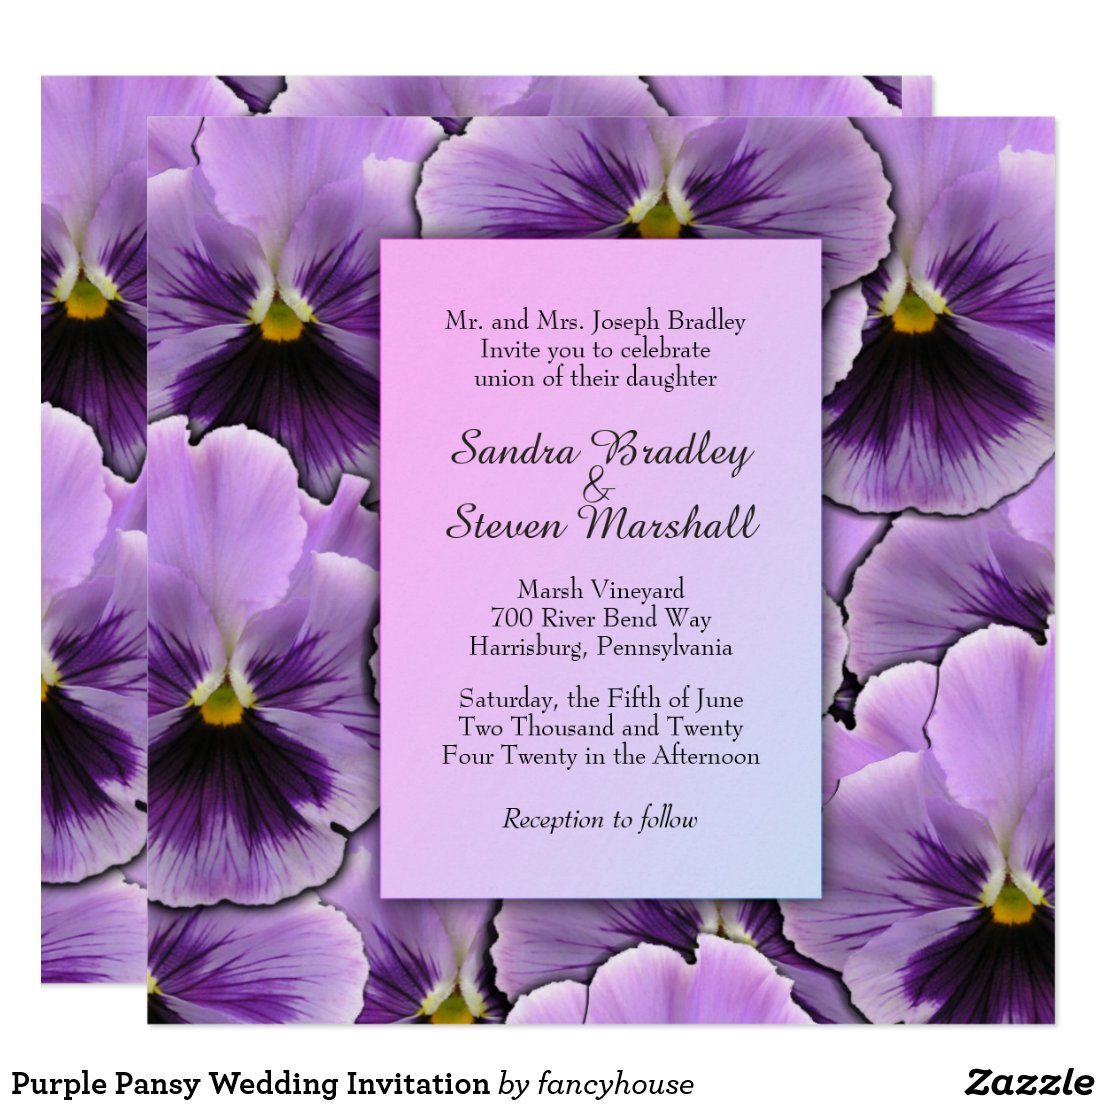 Pin On Wedding Invitations